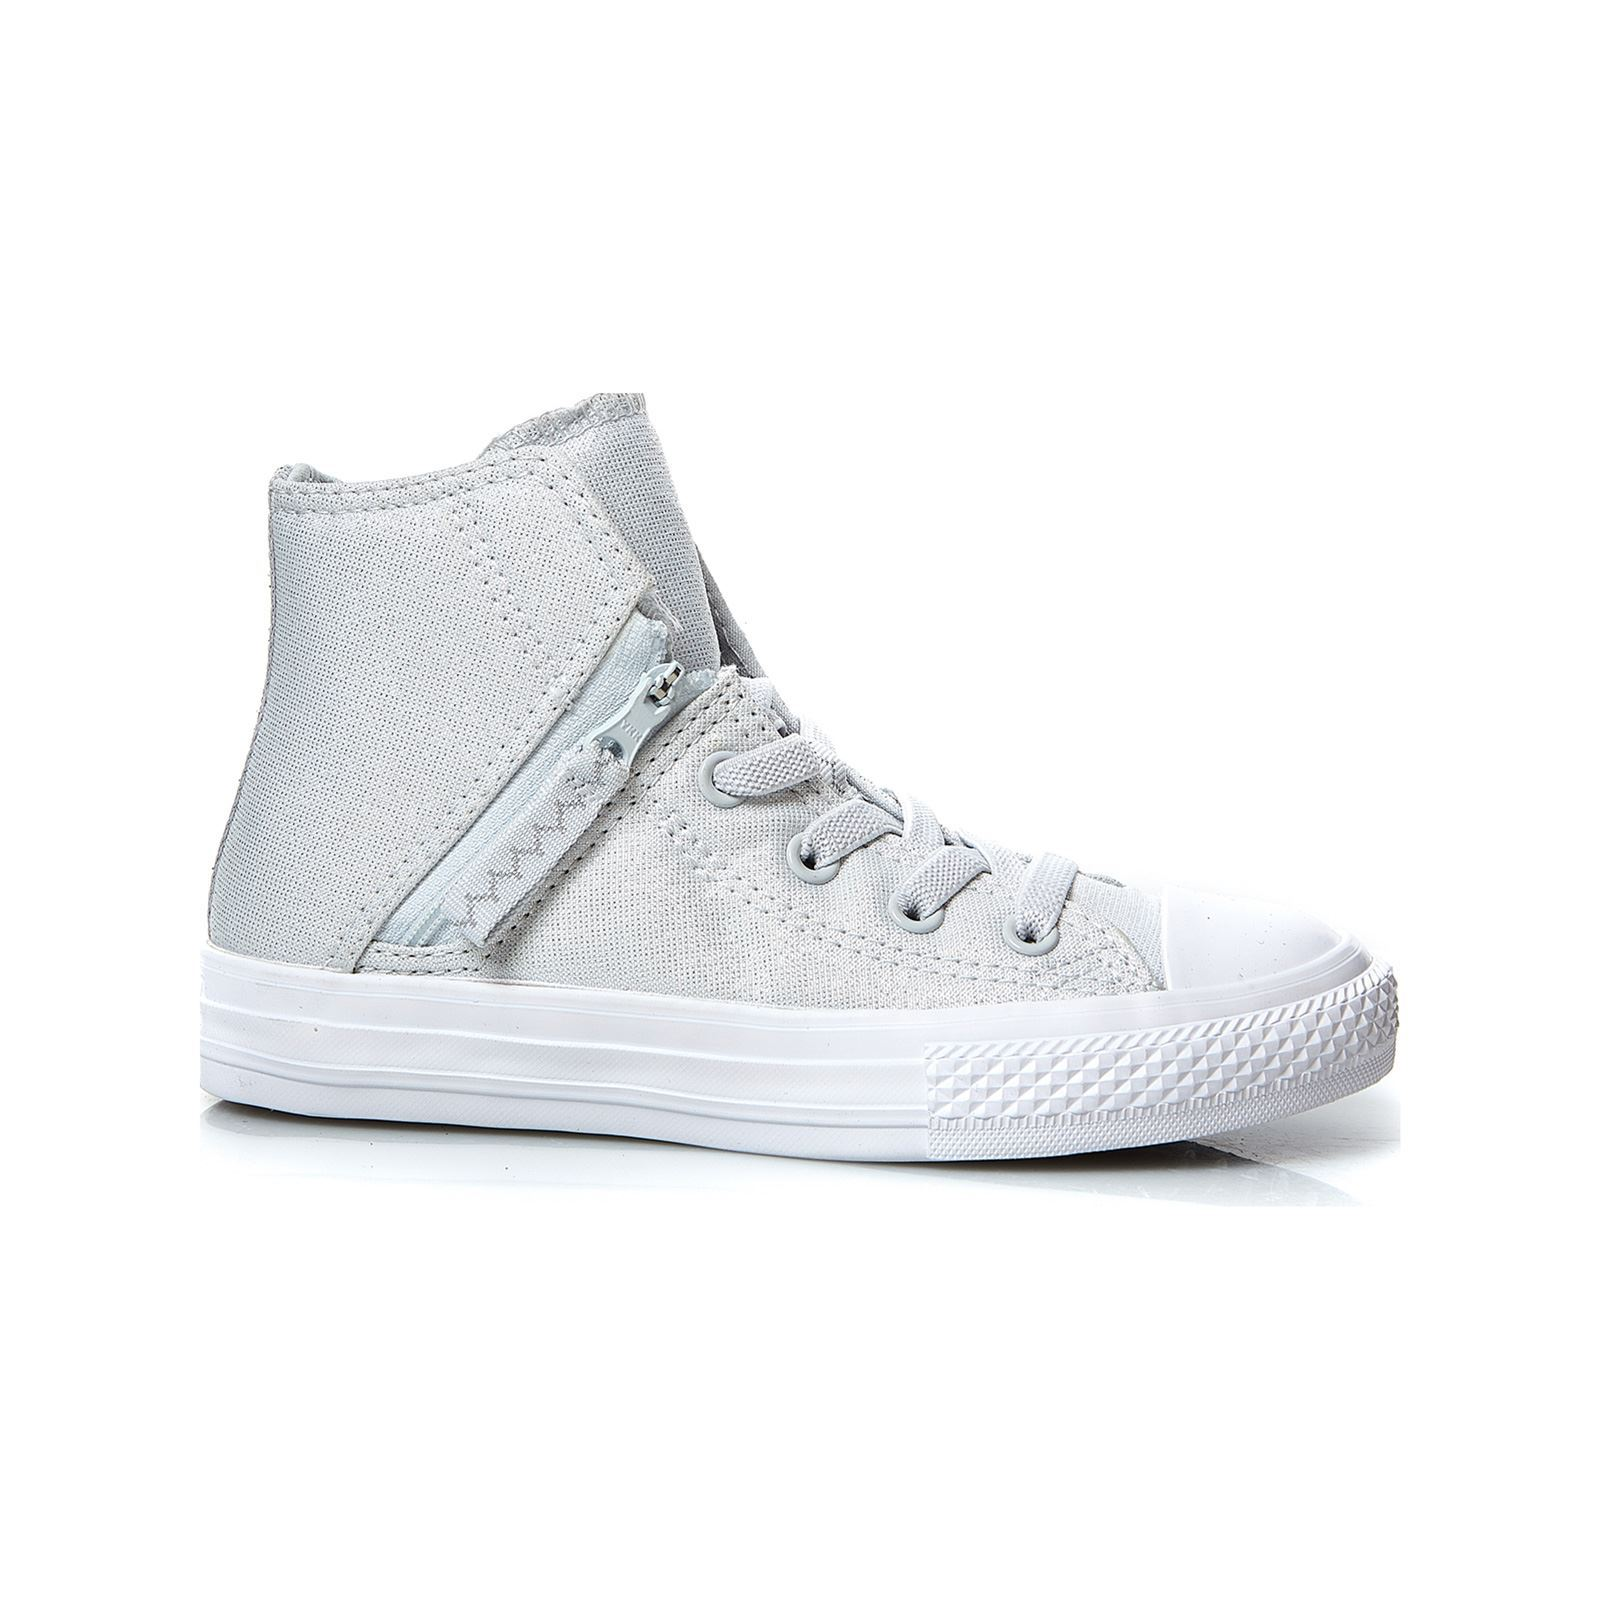 1684ee7f6ddc3 Converse Chuck Taylor All Star - Baskets montantes - gris clair ...